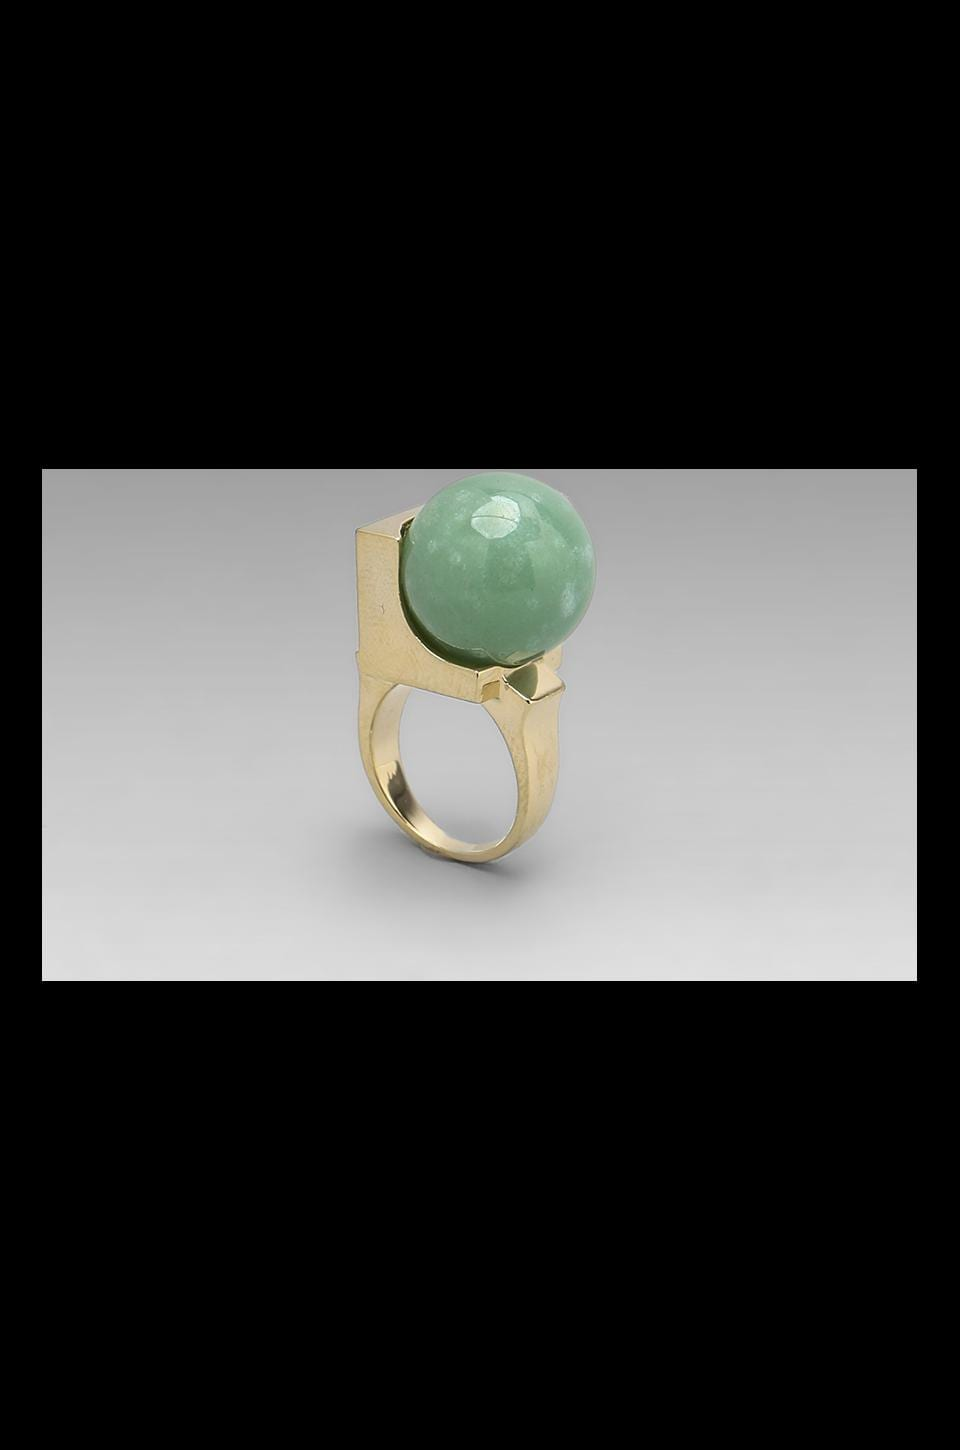 Low Luv x Erin Wasson Cyrstalline Orb Ring in Green Alexandrite